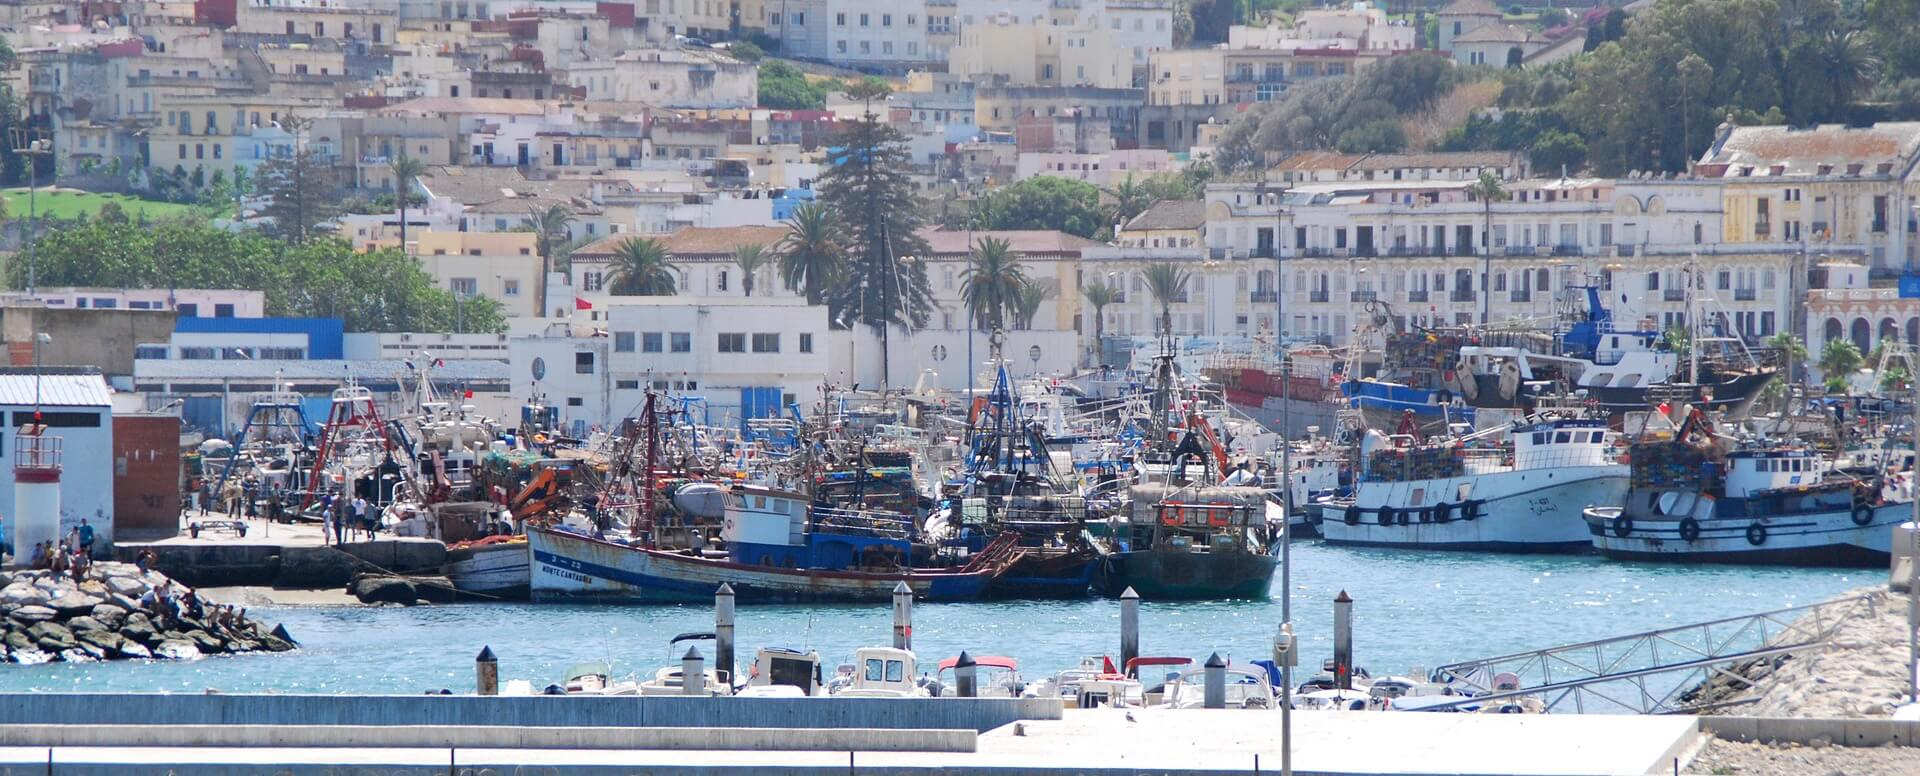 2. The city of Tangier - Morocco